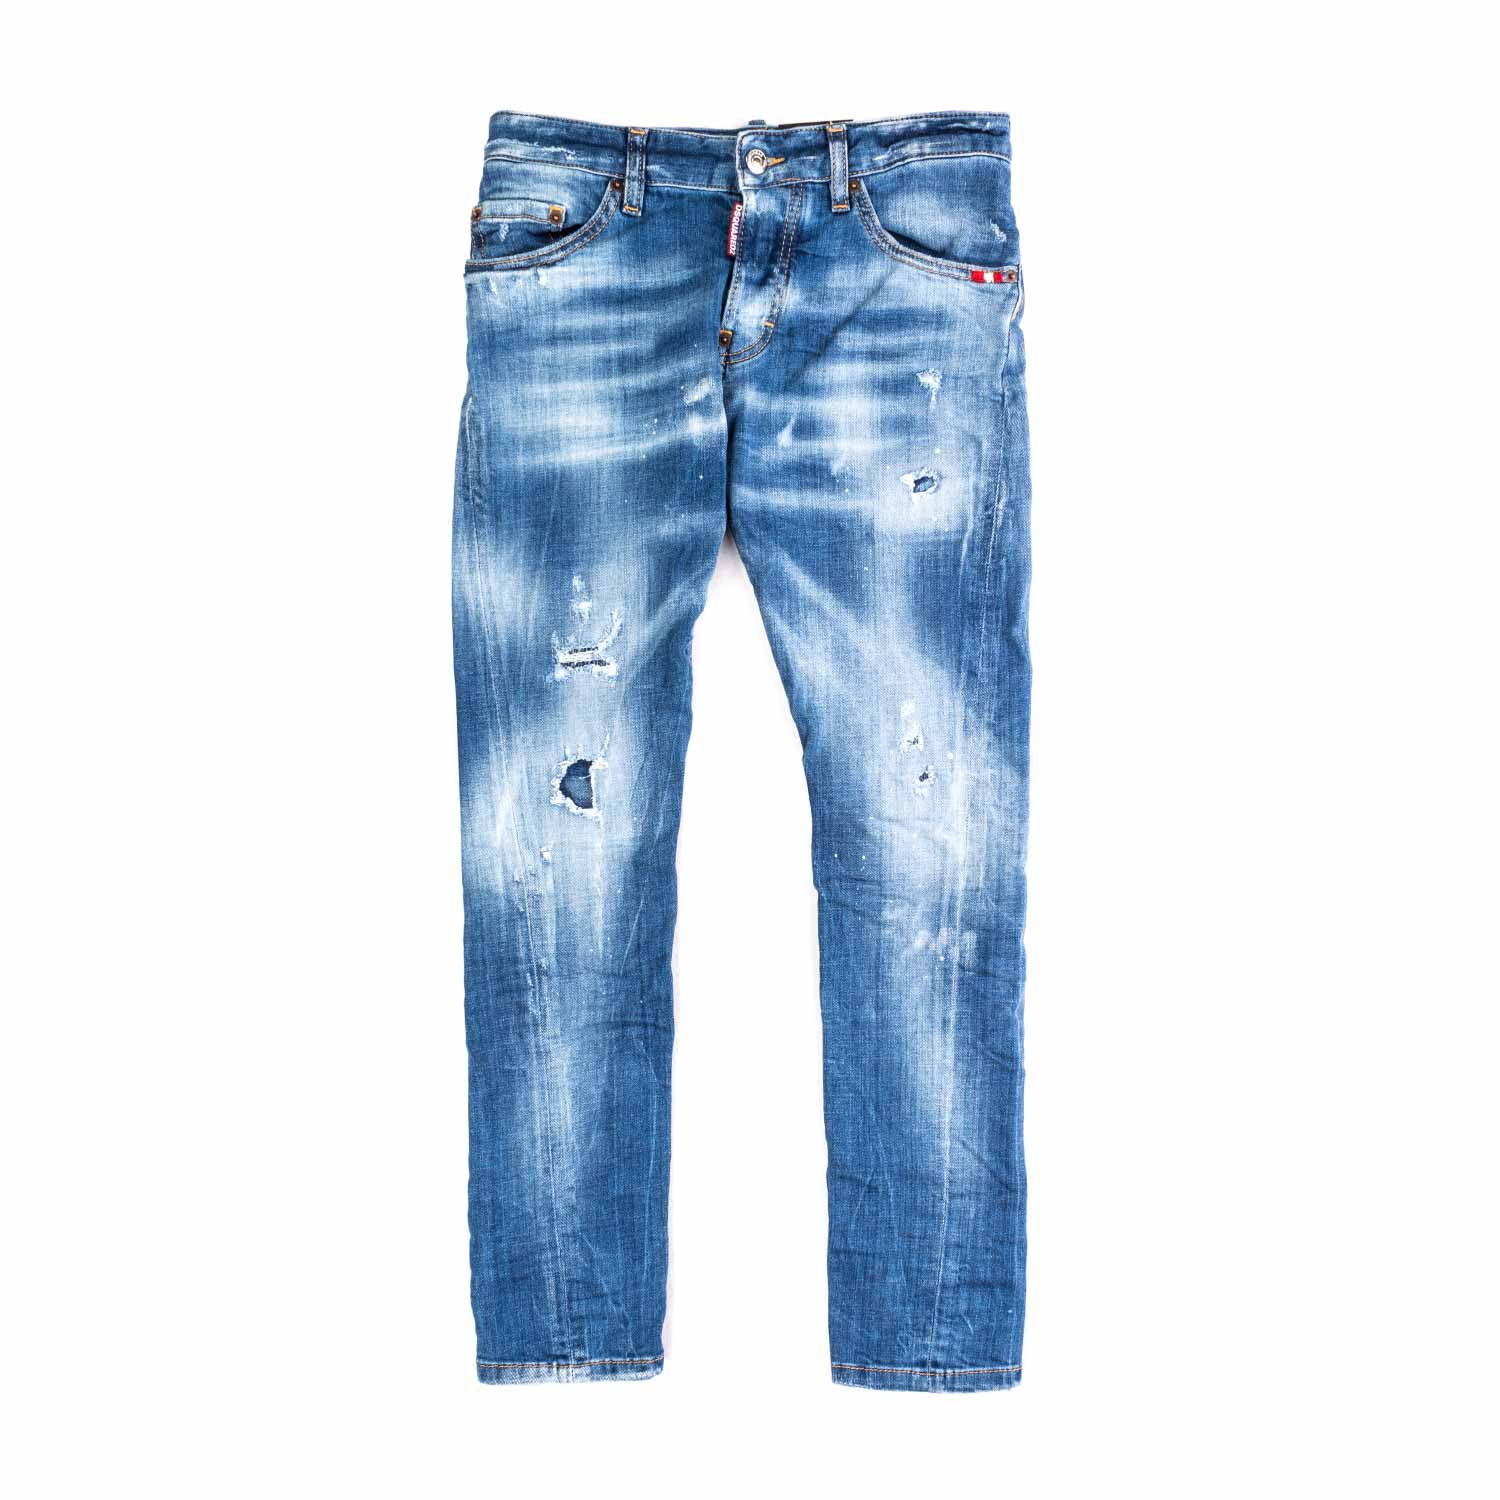 9bfbe5129 Dsquared2 - Distressed Jeans For Boys - annameglio.com shop online